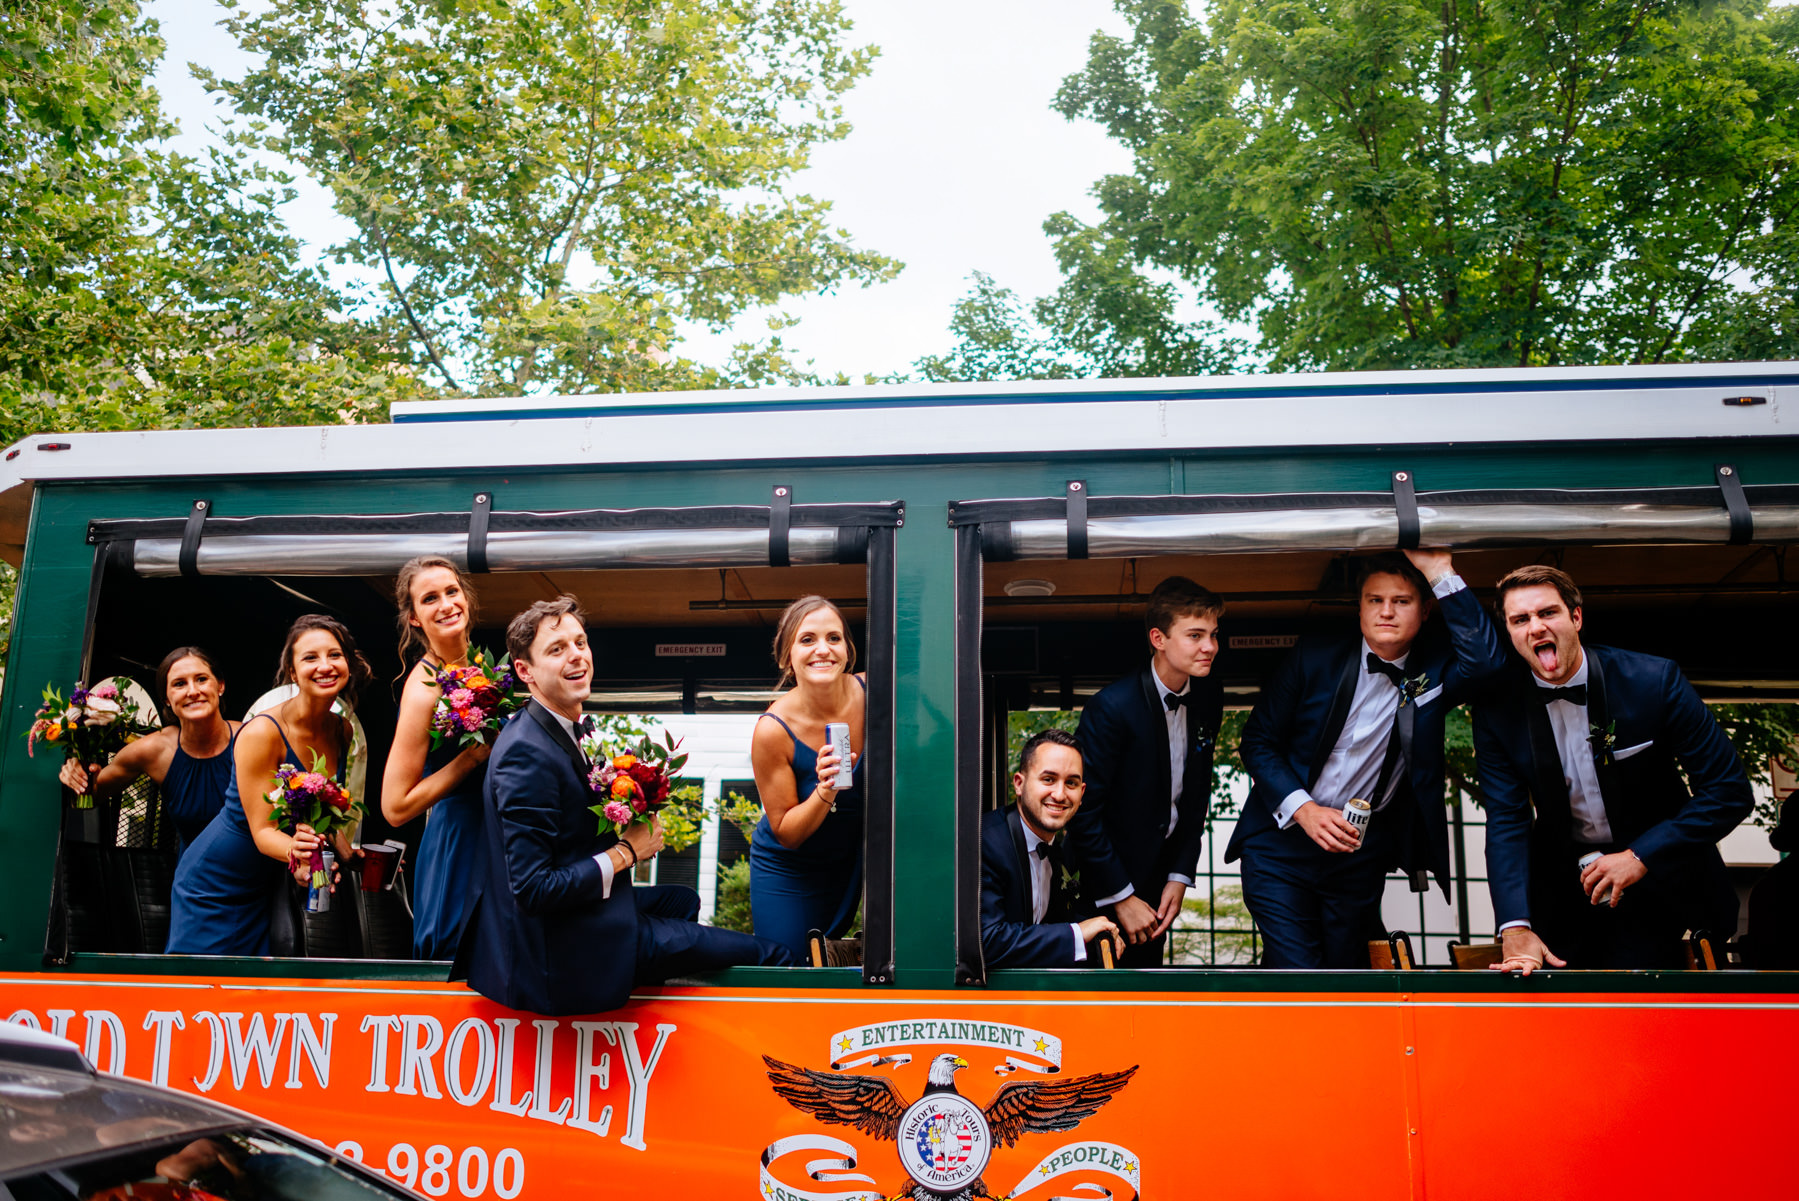 wedding party on trolley